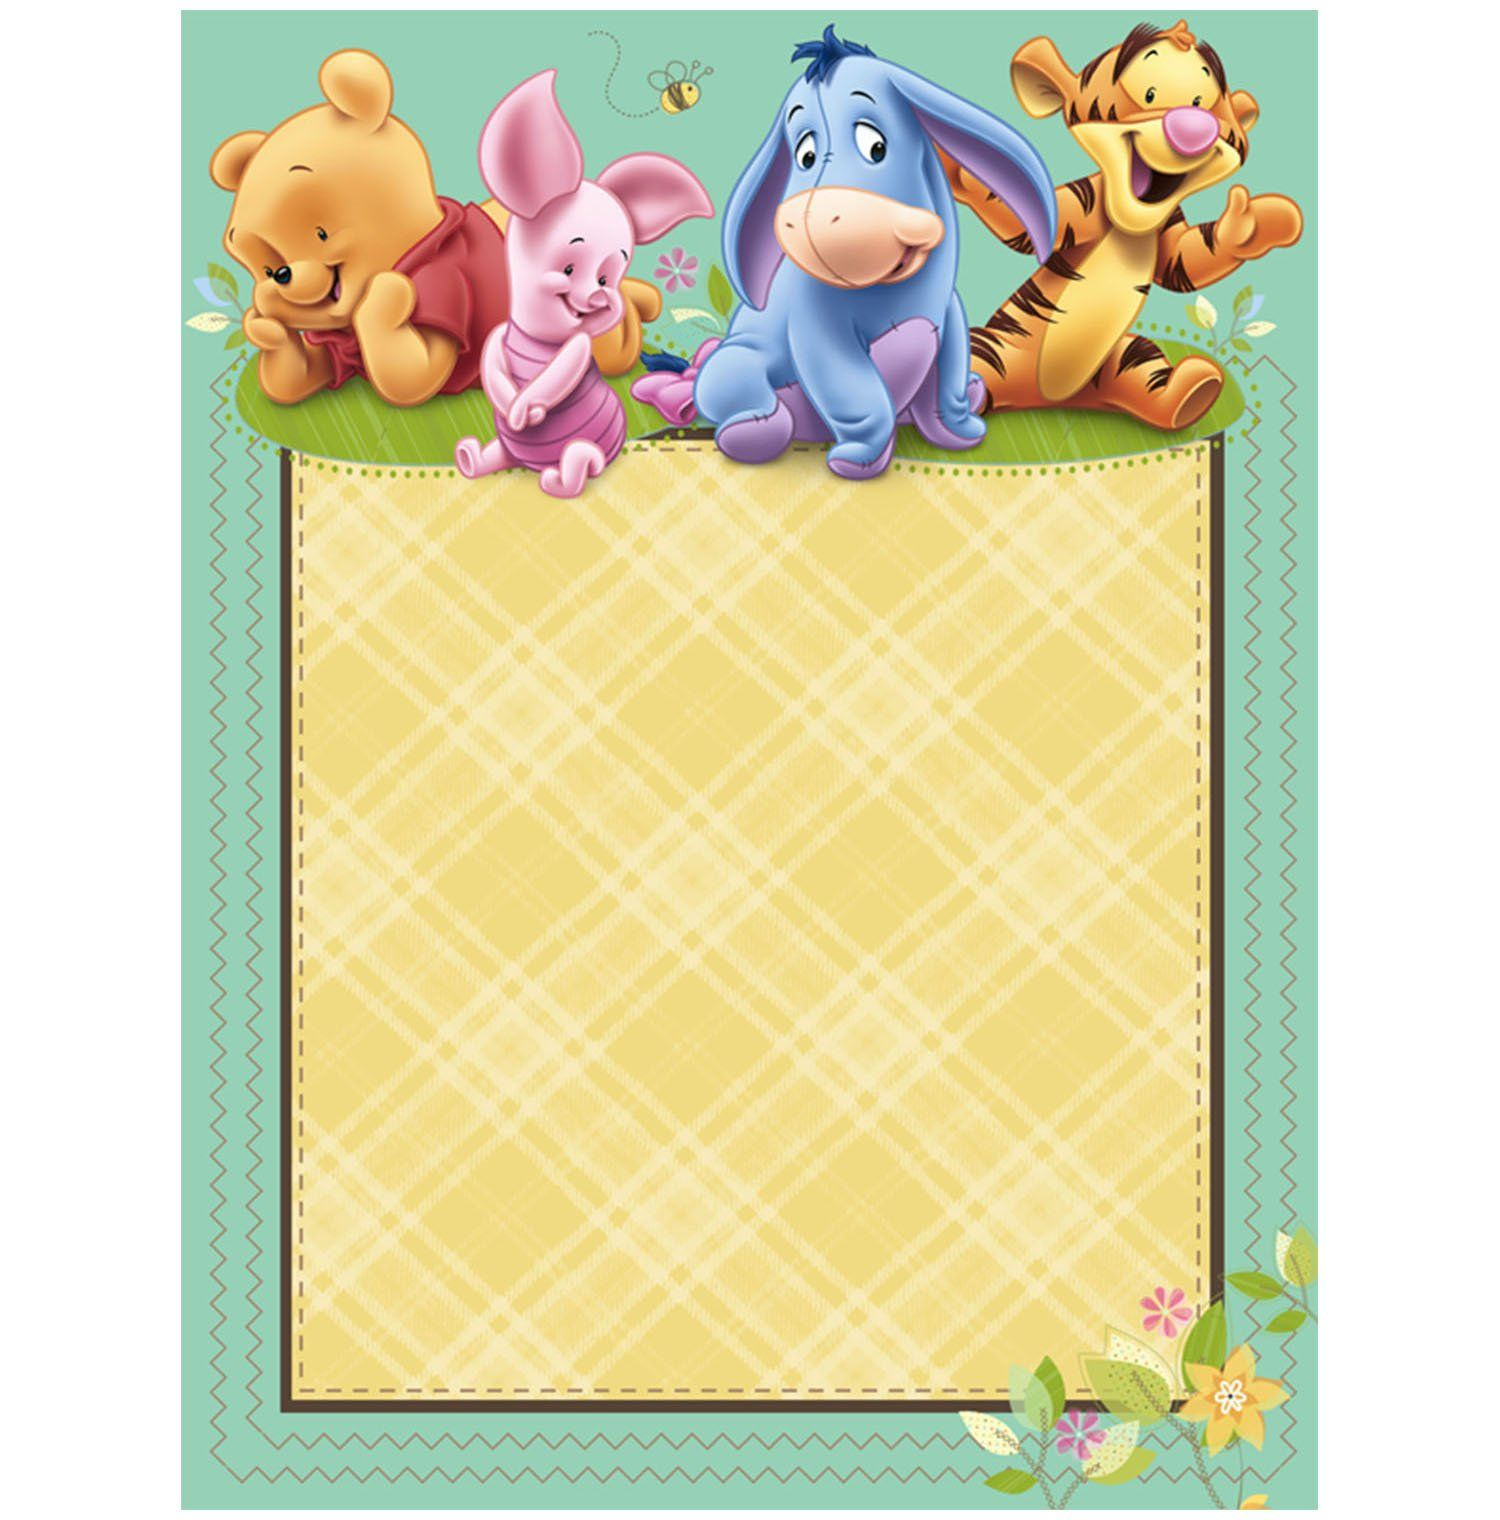 Winnie The Pooh Baby Shower Invitations Part - 39: Art Baby Pooh And Friends Baby Shower Imprintable Invitations ? Winnie The Pooh  Baby Shower Party-ideas